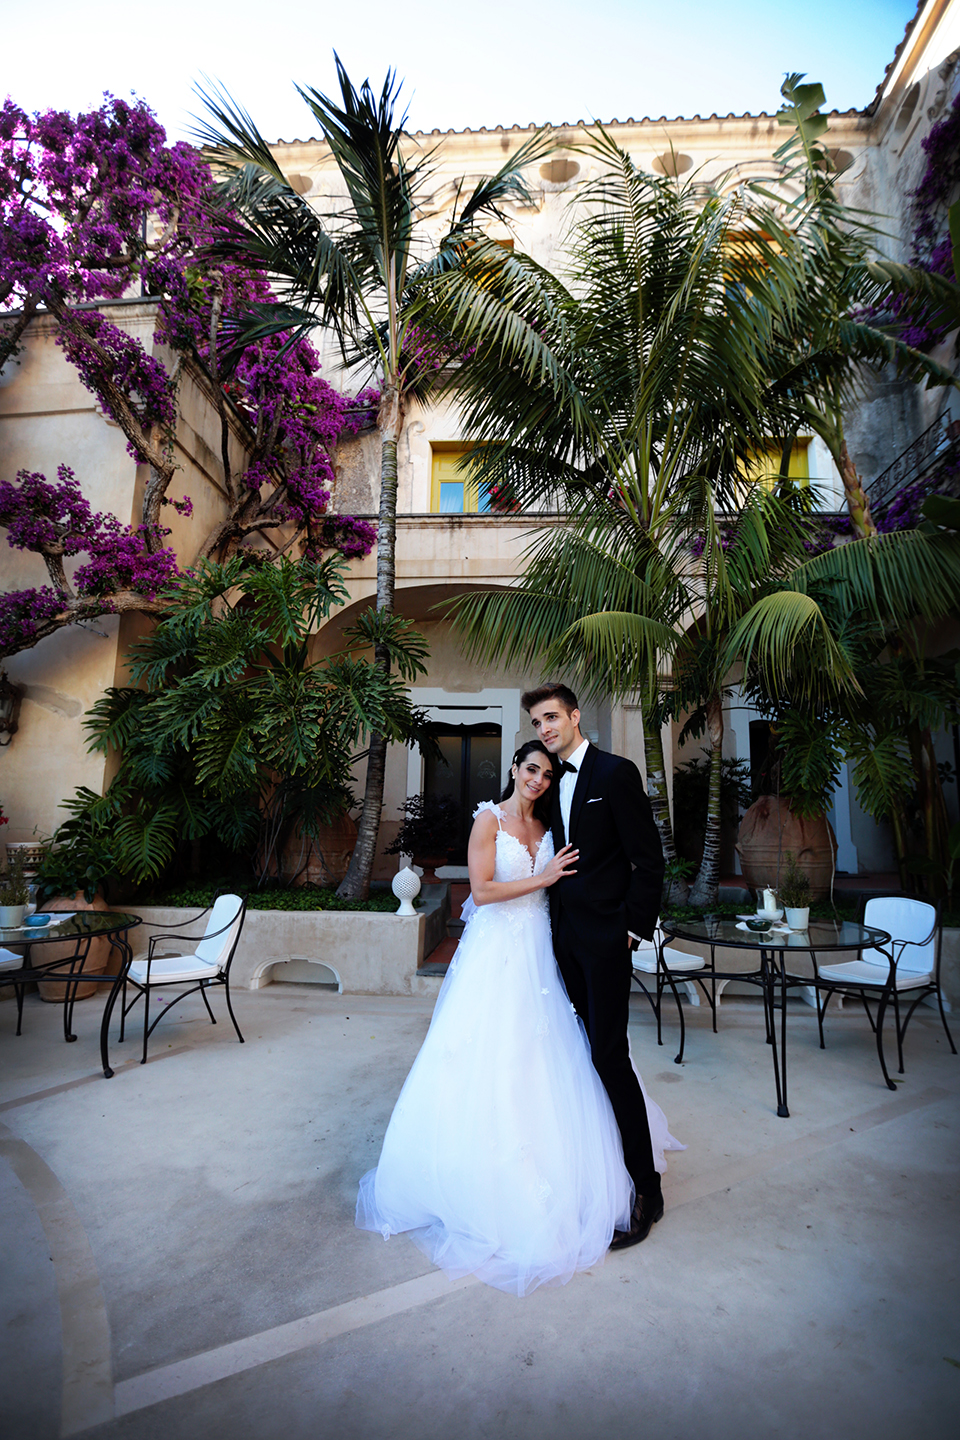 positano-weddin-photographers-italy-wedding-photographers-destination-wedding-photographers-estilo-best-wedding-photographers-in-the-world-casper-bosman-wedding-gown-wedding-style-stylish-modern-wedding-photography-044.jpg